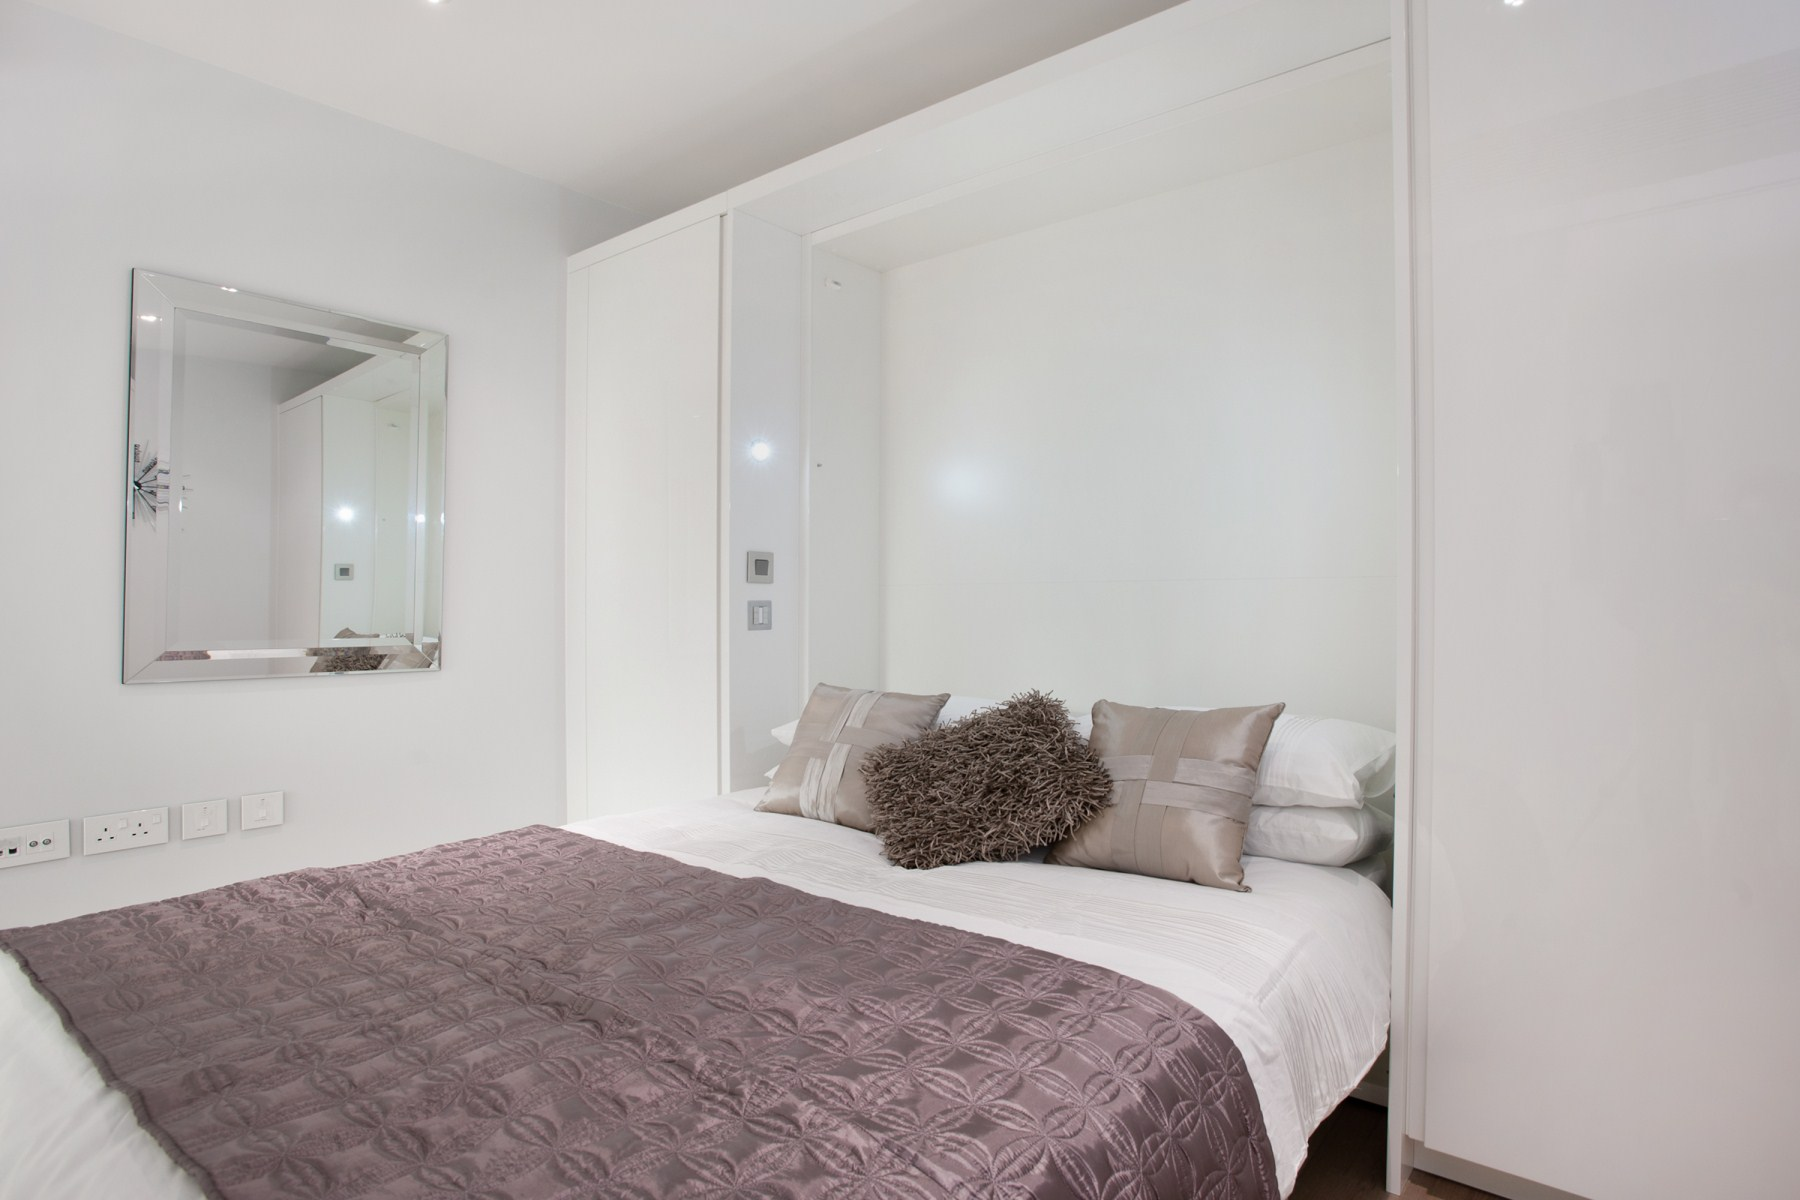 2 Bed Apartment To Rent Central St Giles Piazza London Wc2h 8ab